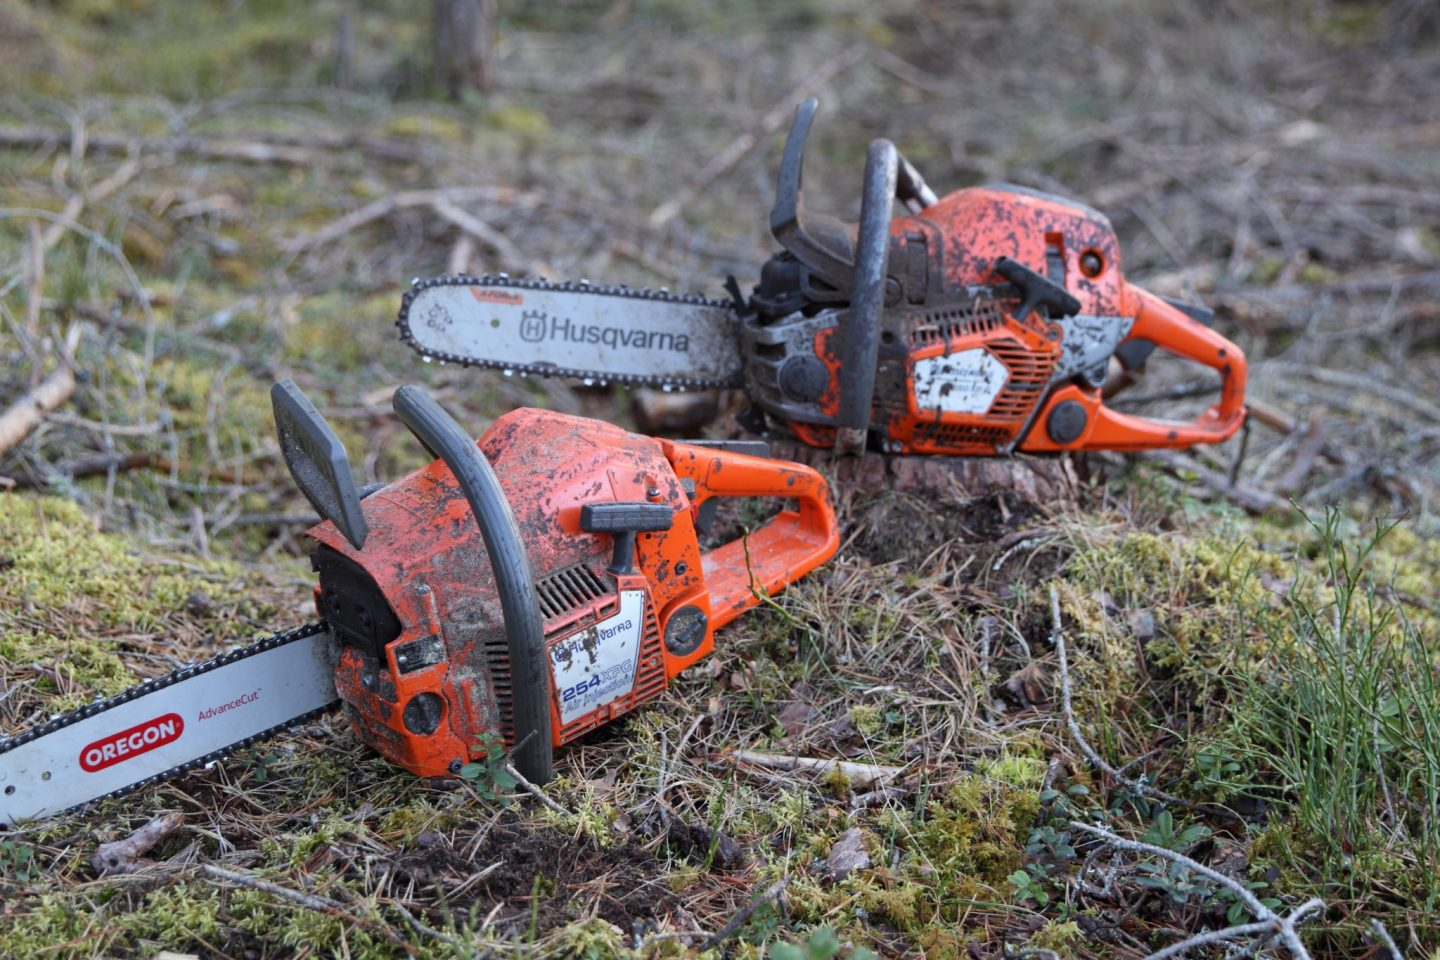 Get a license – for chain saw